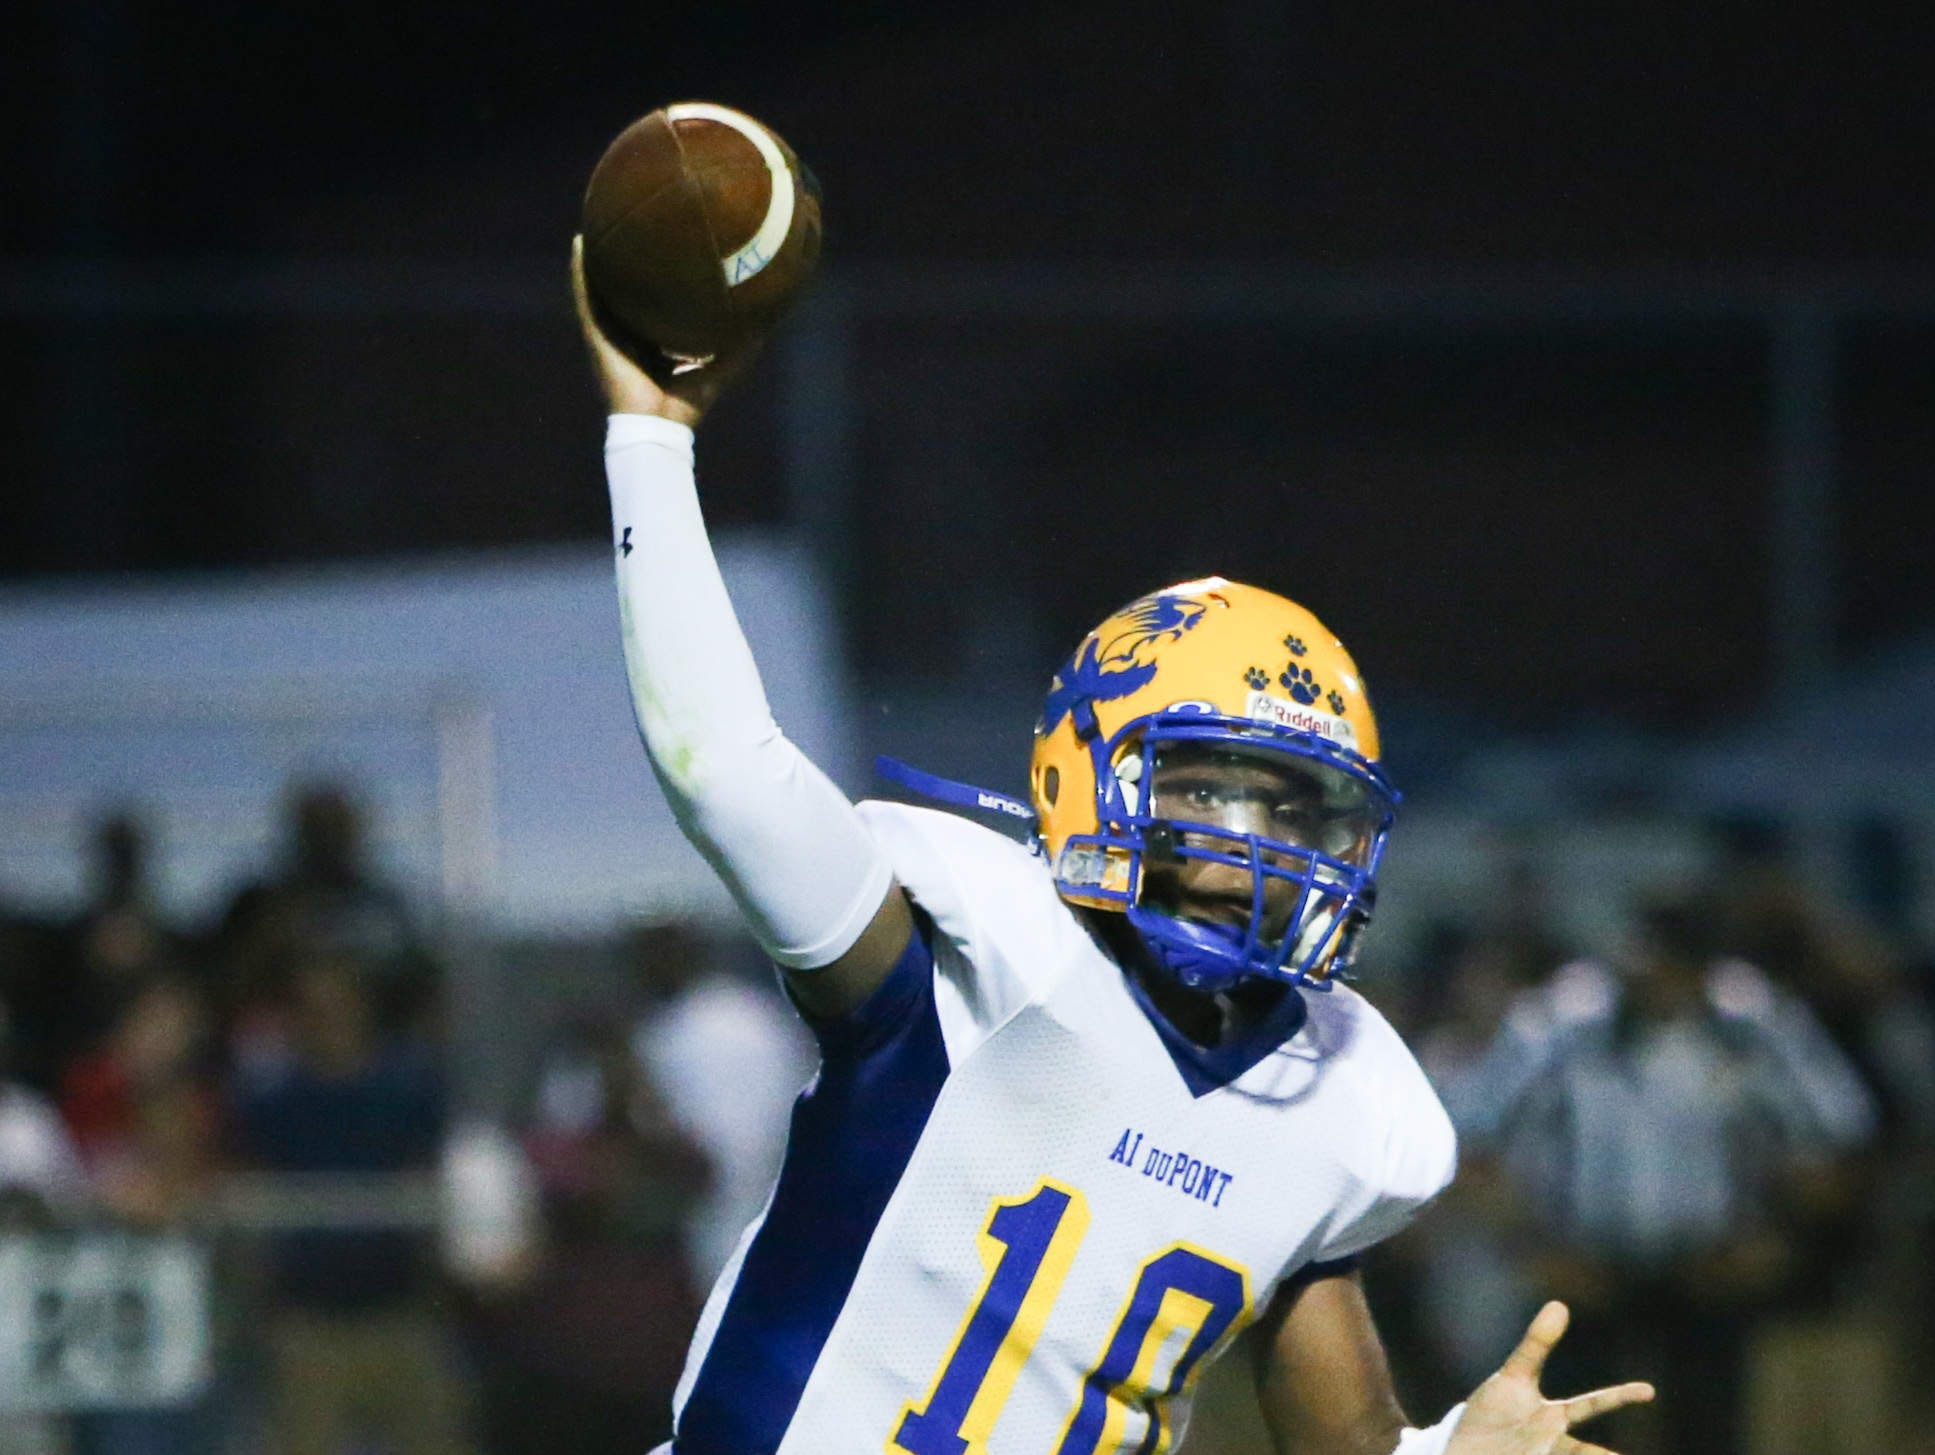 A.I. du Pont quarterback Chad Jones, seen here against Sussex Tech, completed 17 of 25 passes for 184 yards with two second-half TD tosses.